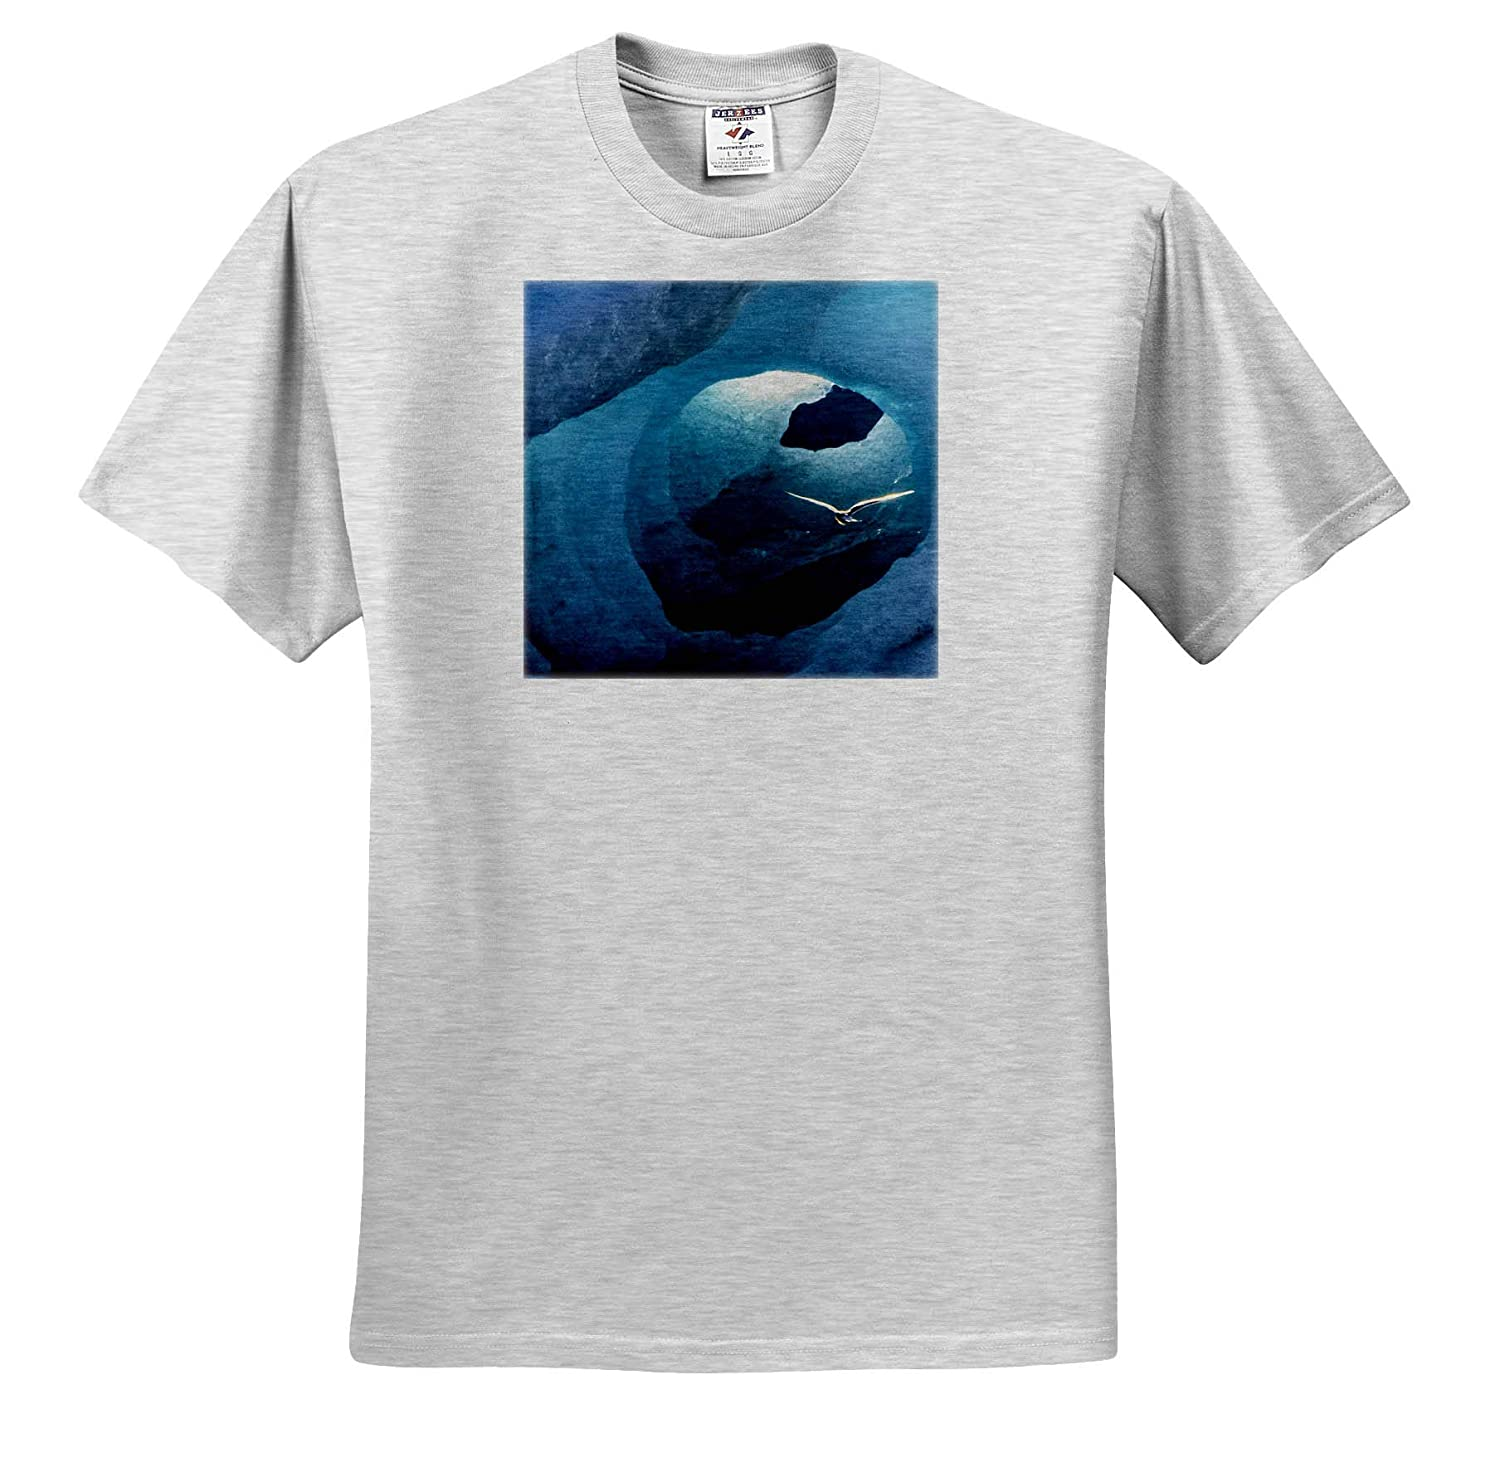 Birds Iceland Arctic Tern in an Ice Tunnel 3dRose Danita Delimont Adult T-Shirt XL ts/_313628